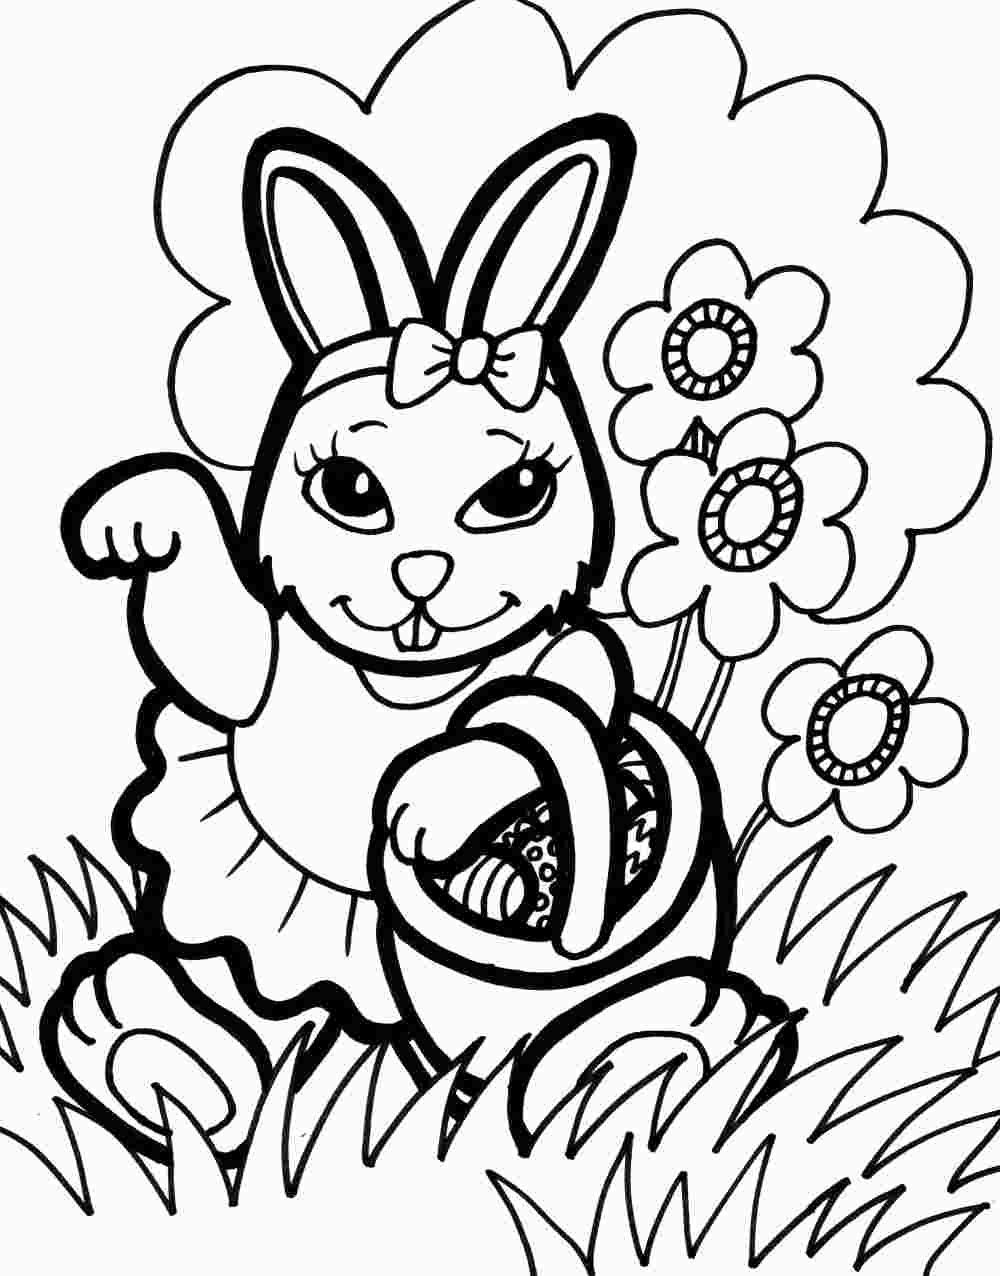 Print Bunny Coloring Pages Bunny Coloring Pages Easter Bunny